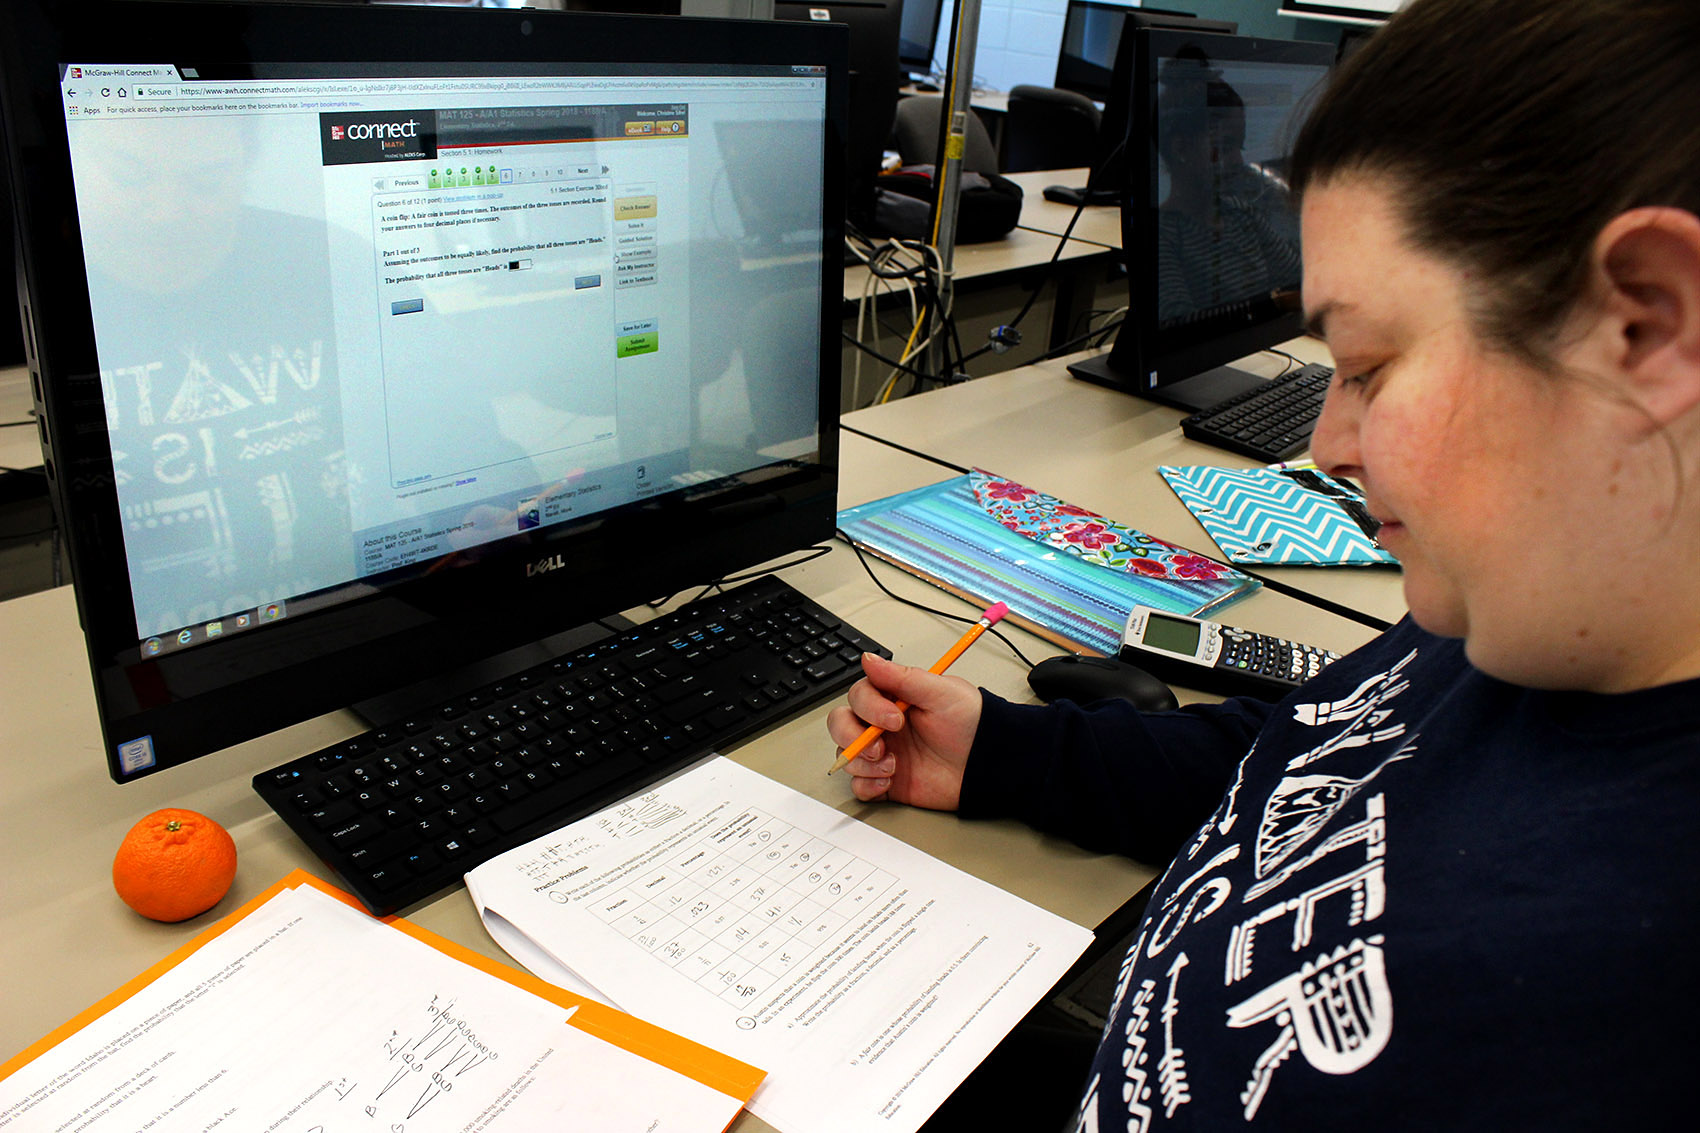 Christine Sifre works through probability equations in a statistics fusion course at Northern Essex Community College. (Carrie Jung/WBUR)